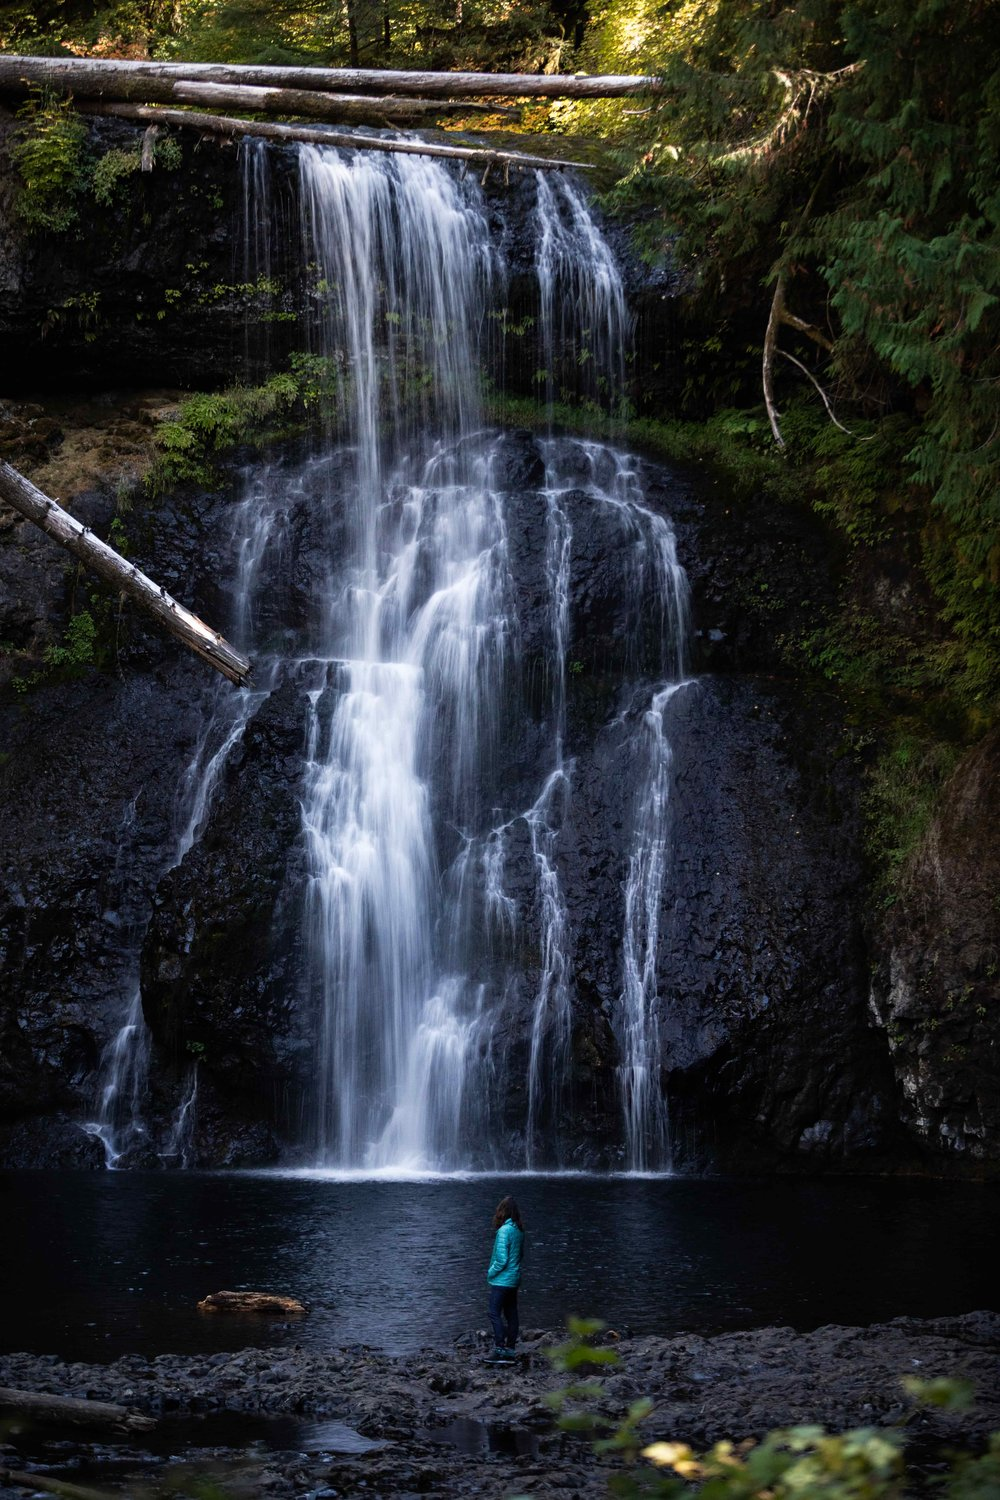 Folland Photography at Silver Falls State Park